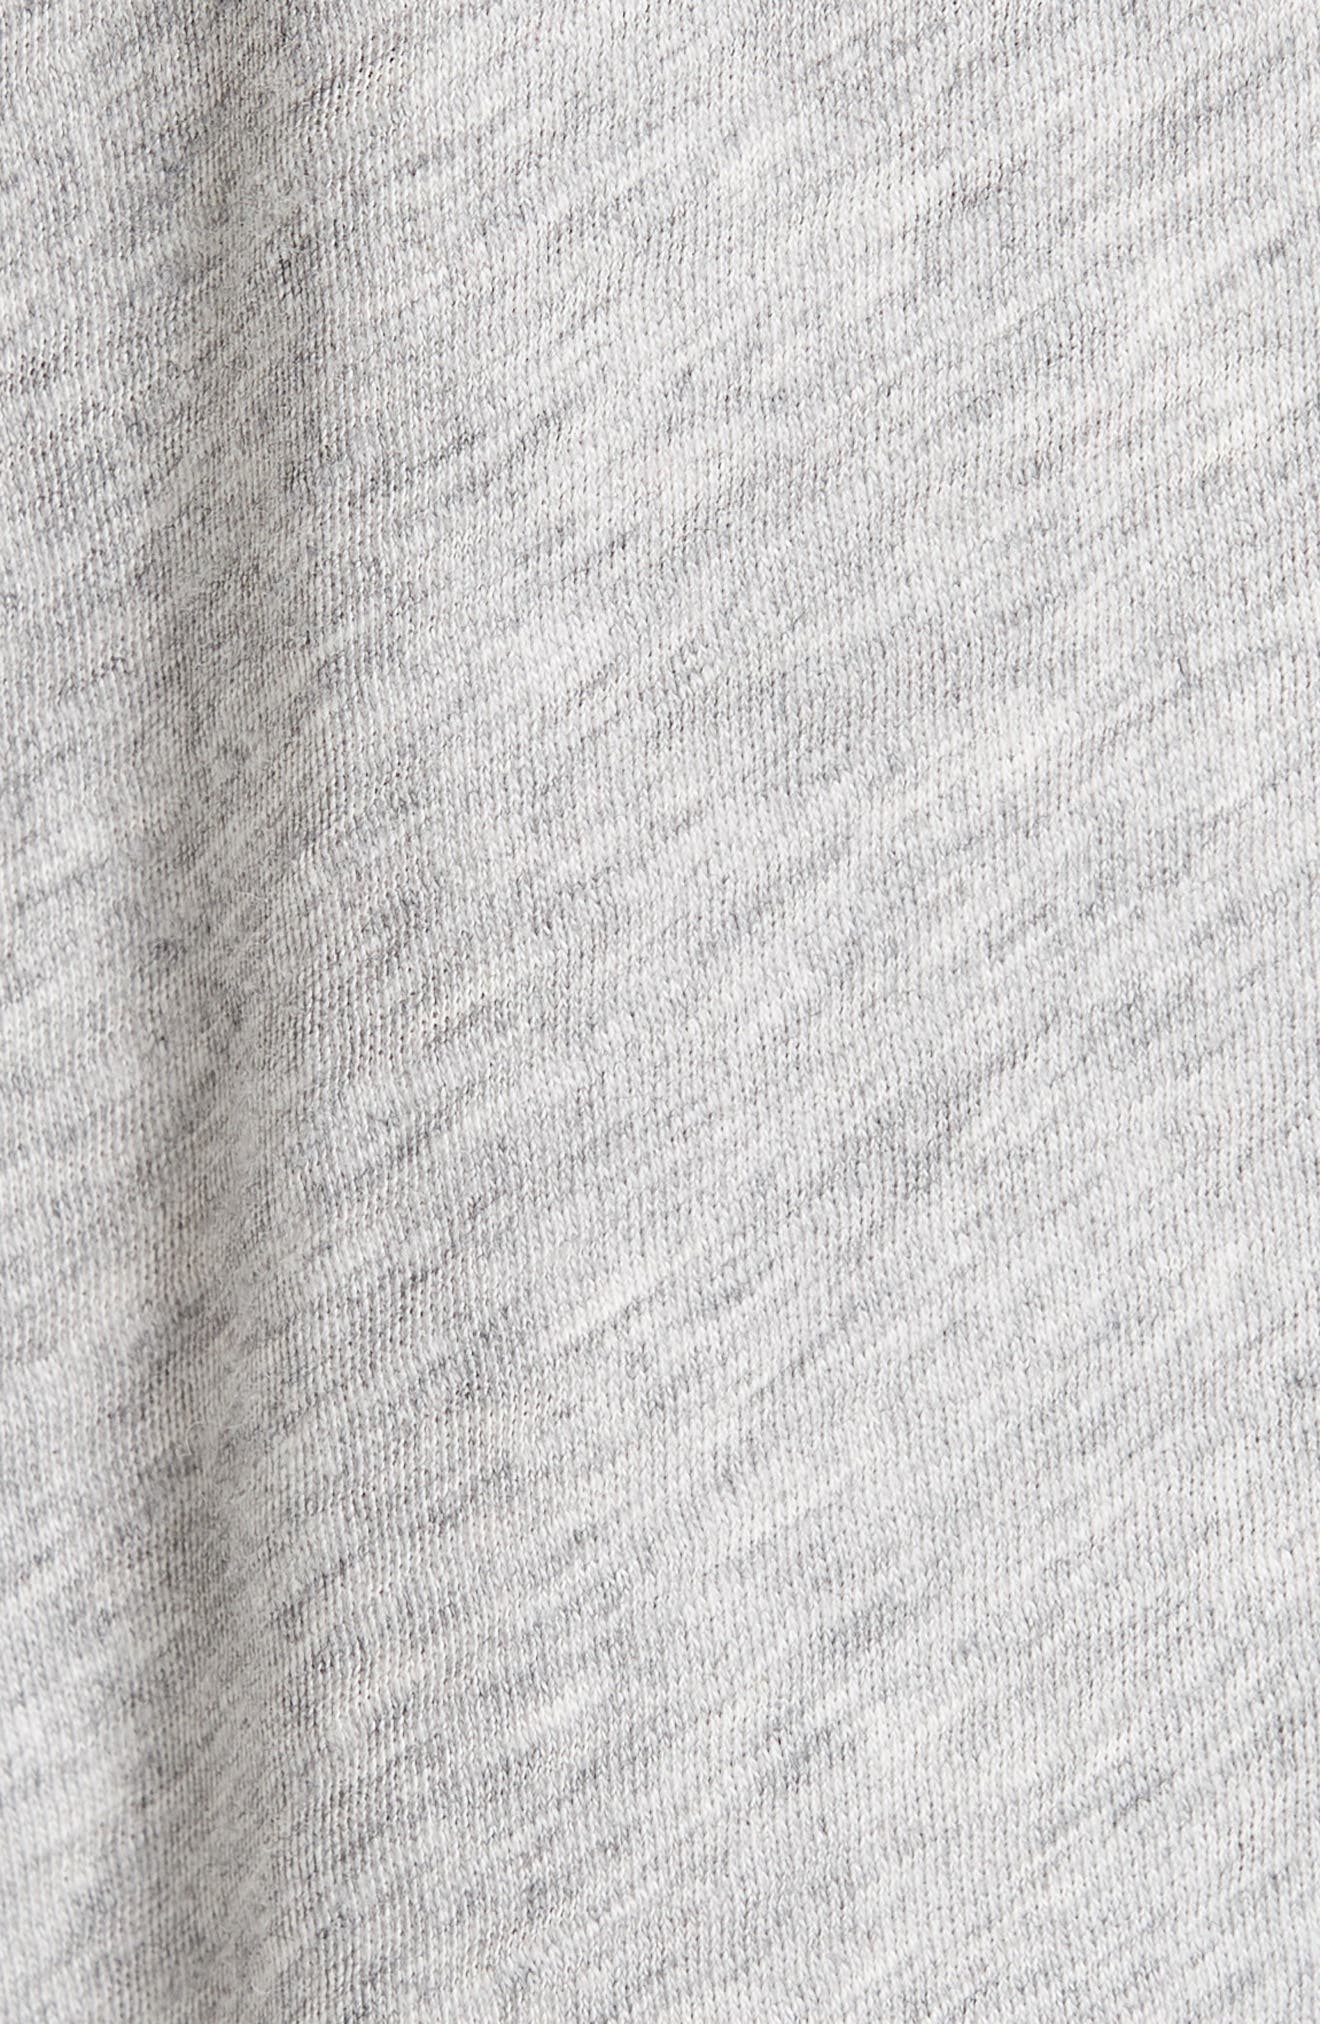 Bye Embroidered Tee,                             Alternate thumbnail 5, color,                             HEATHER GREY